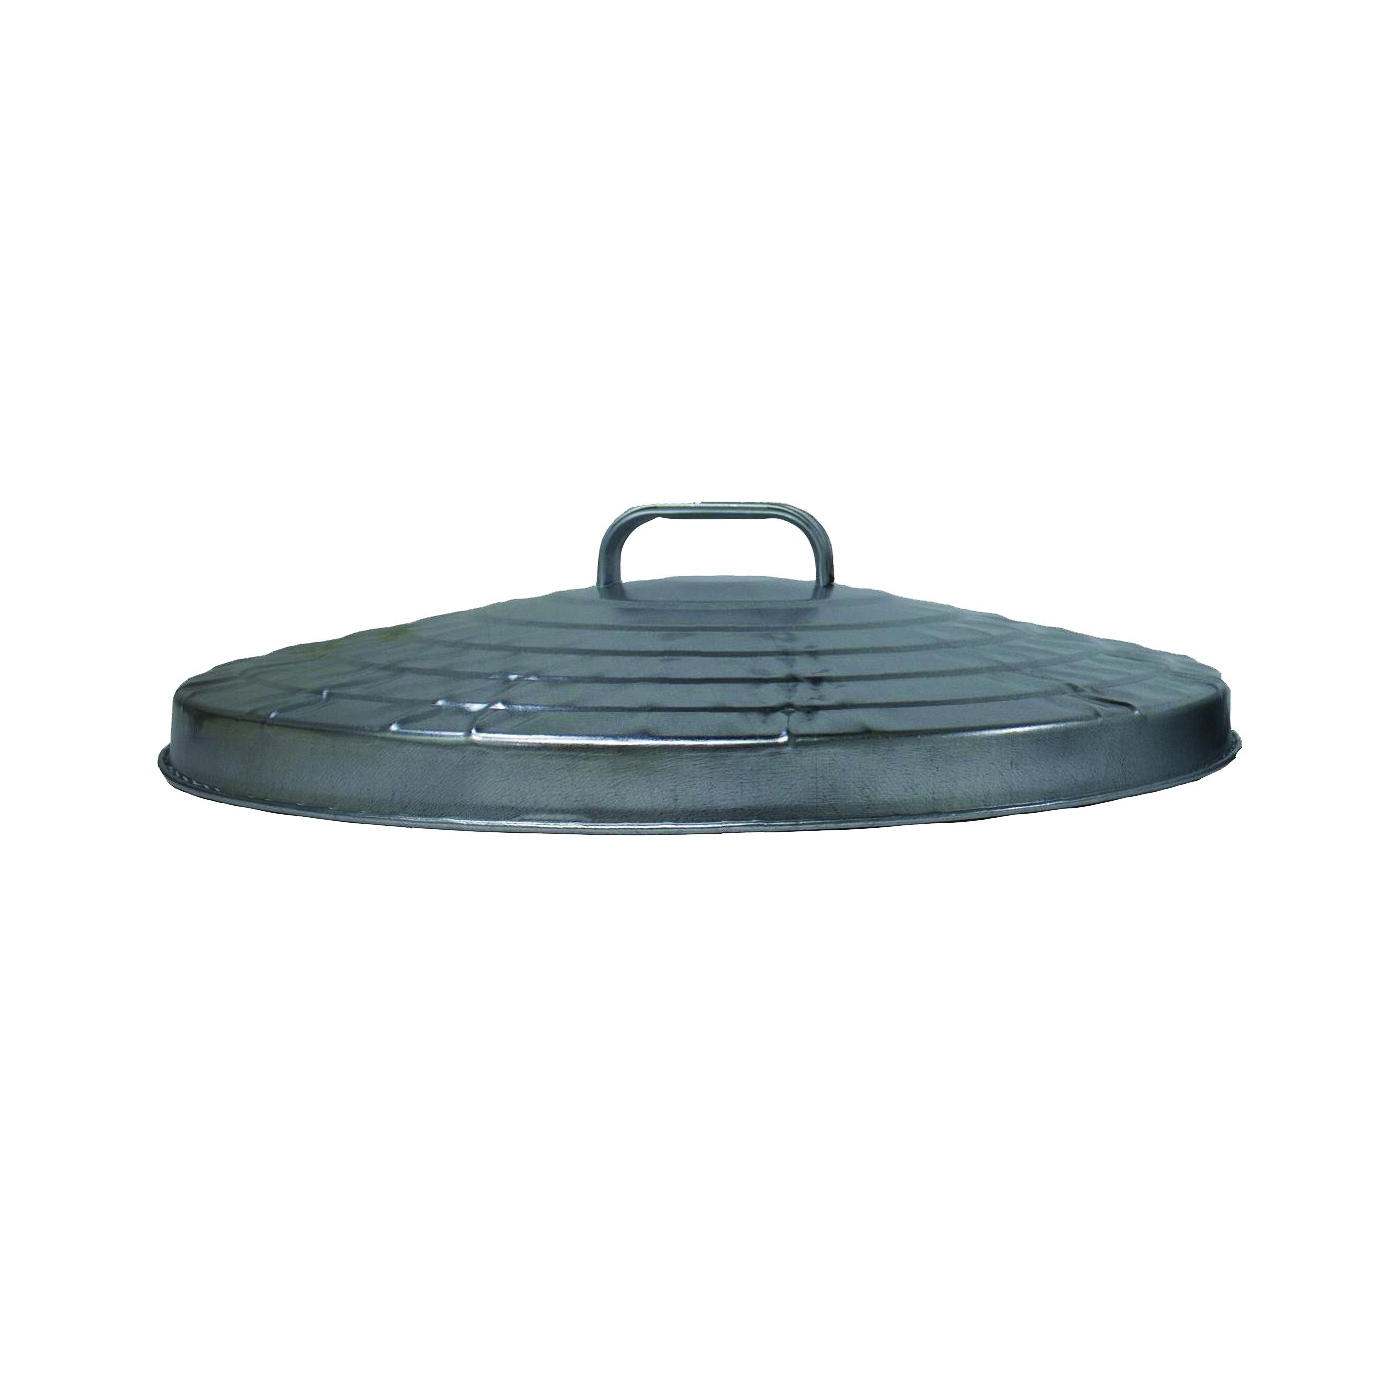 Picture of Behrens 38113 Trash Can Lid, Galvanized Steel, Silver, For: 31 gal Cans